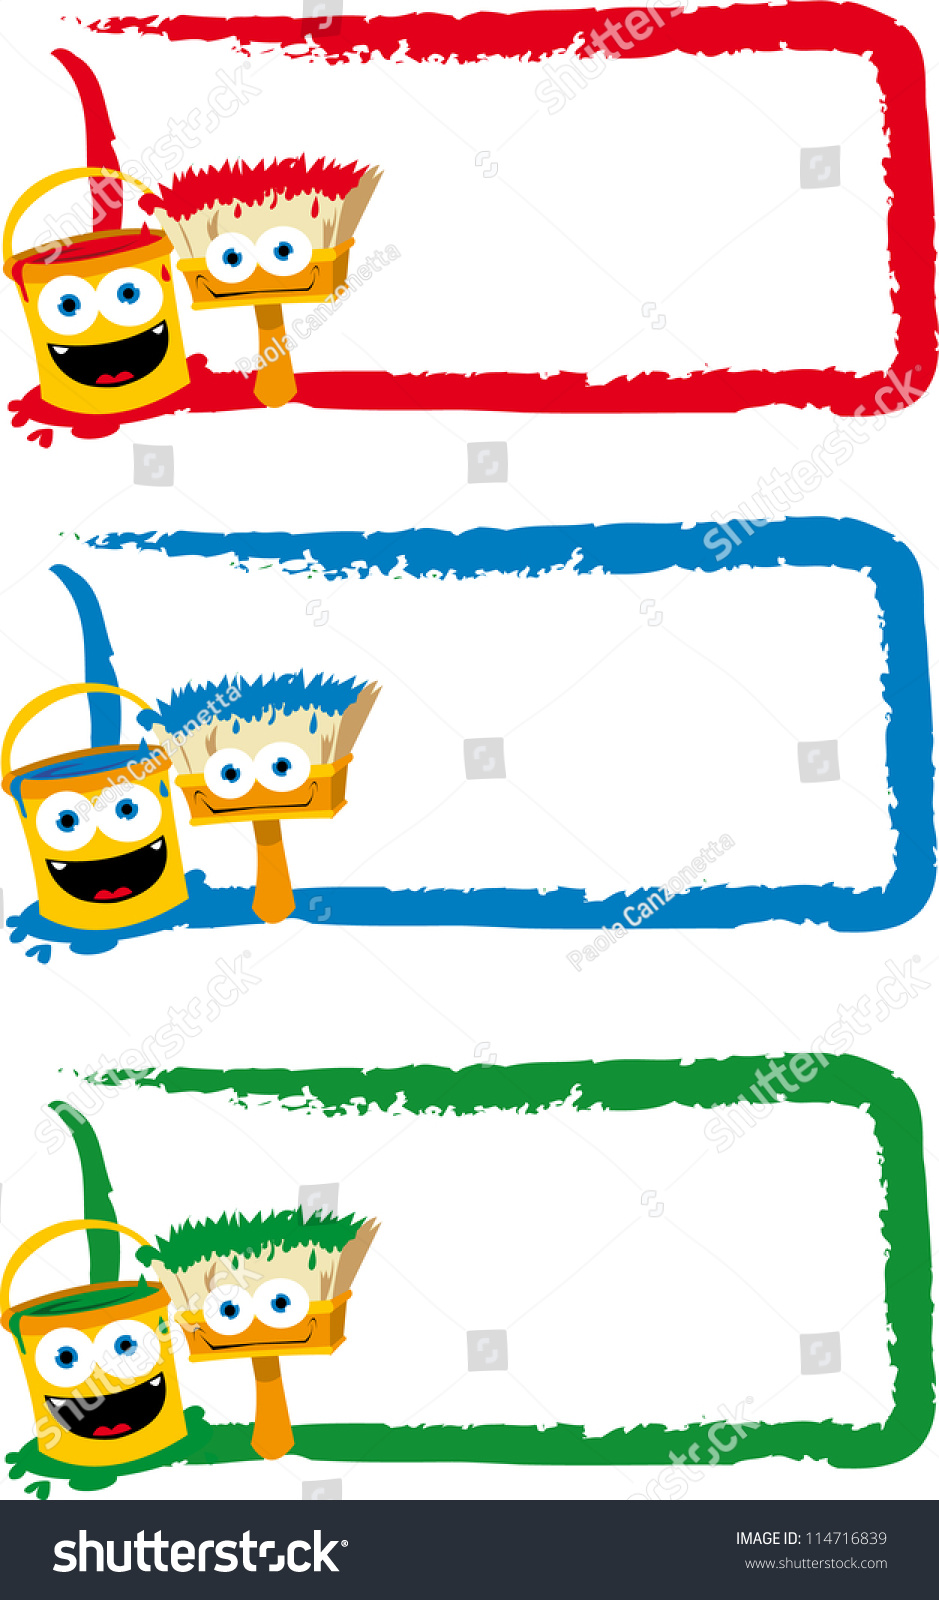 Funny Photo Frames. Funny Picture Frames Apk Screenshot With Funny ...